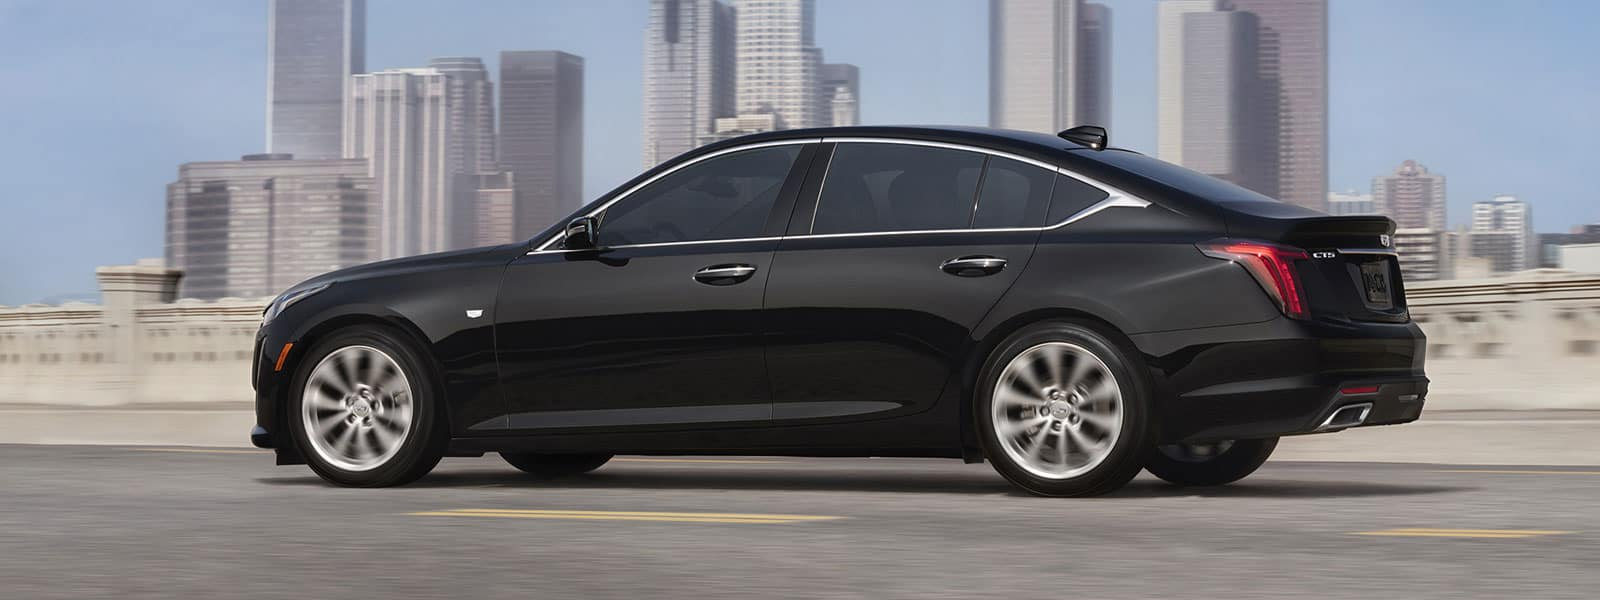 Buy or lease new 2021 Cadillac CT5 in Thornhill Ontario